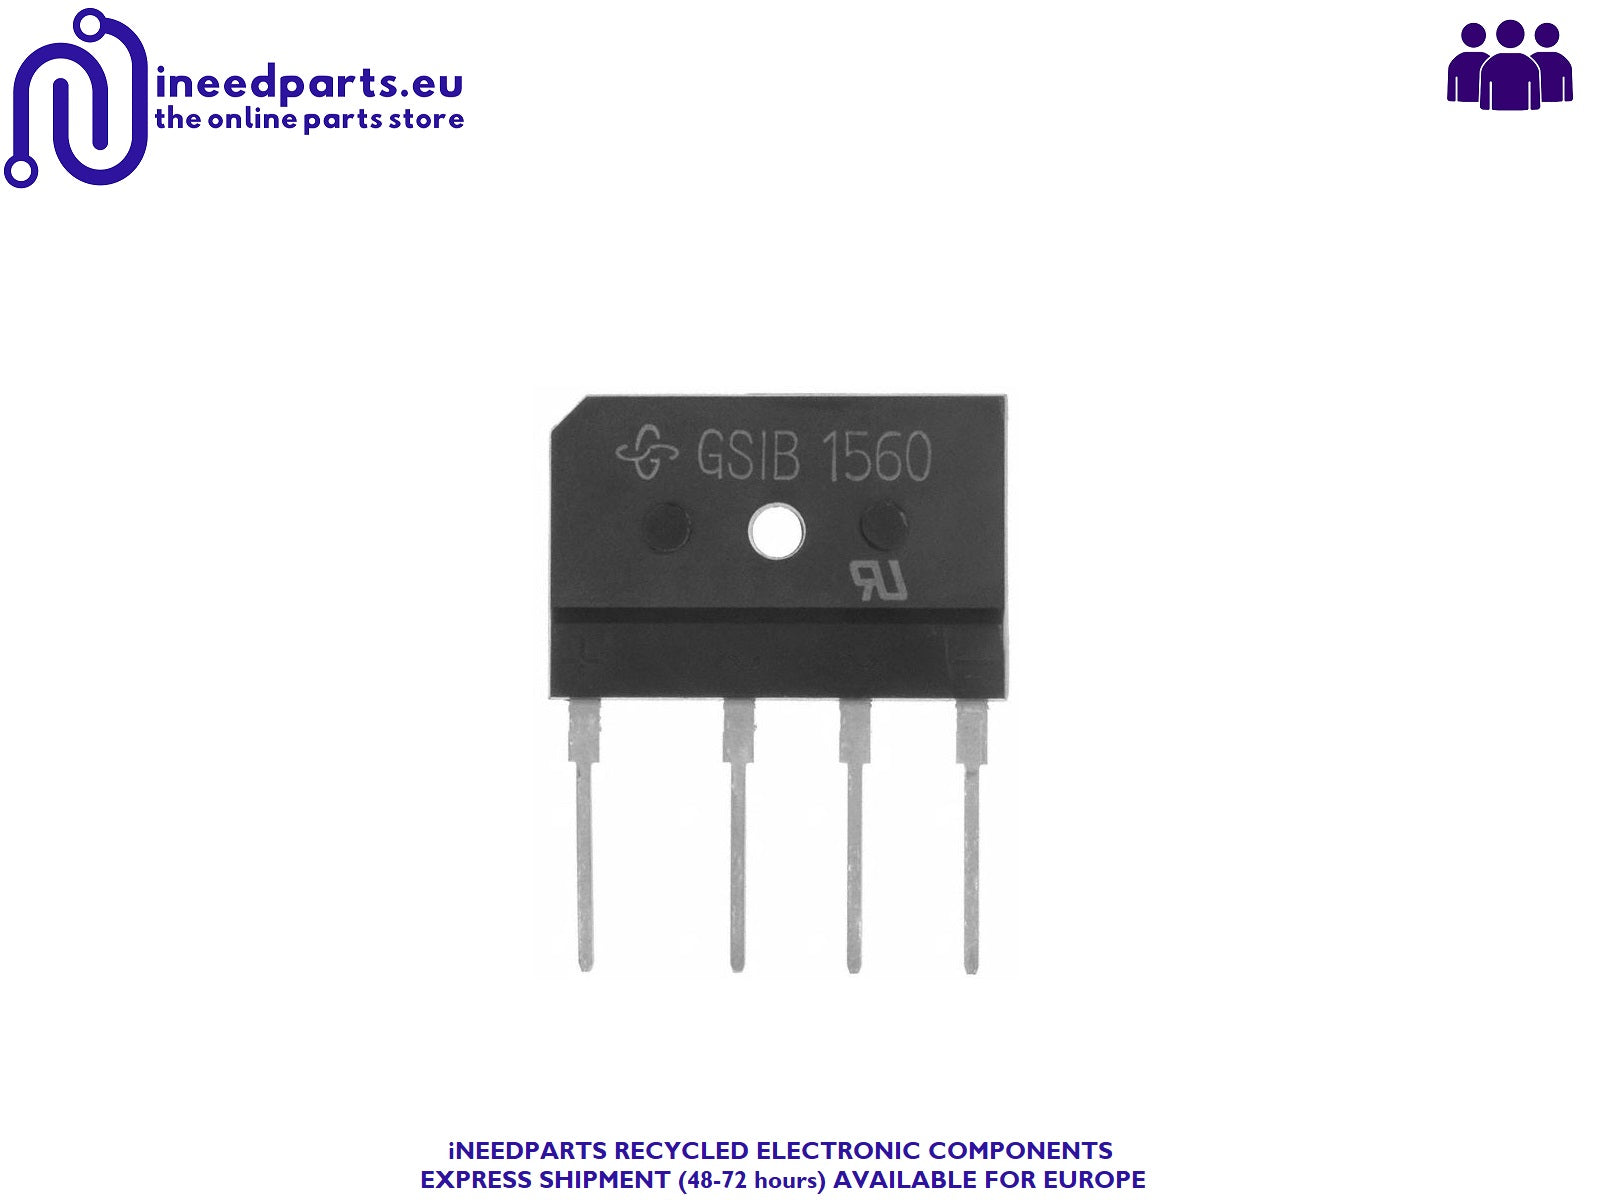 30 x GSIB 1560 15A 600V Bridge Rectifier